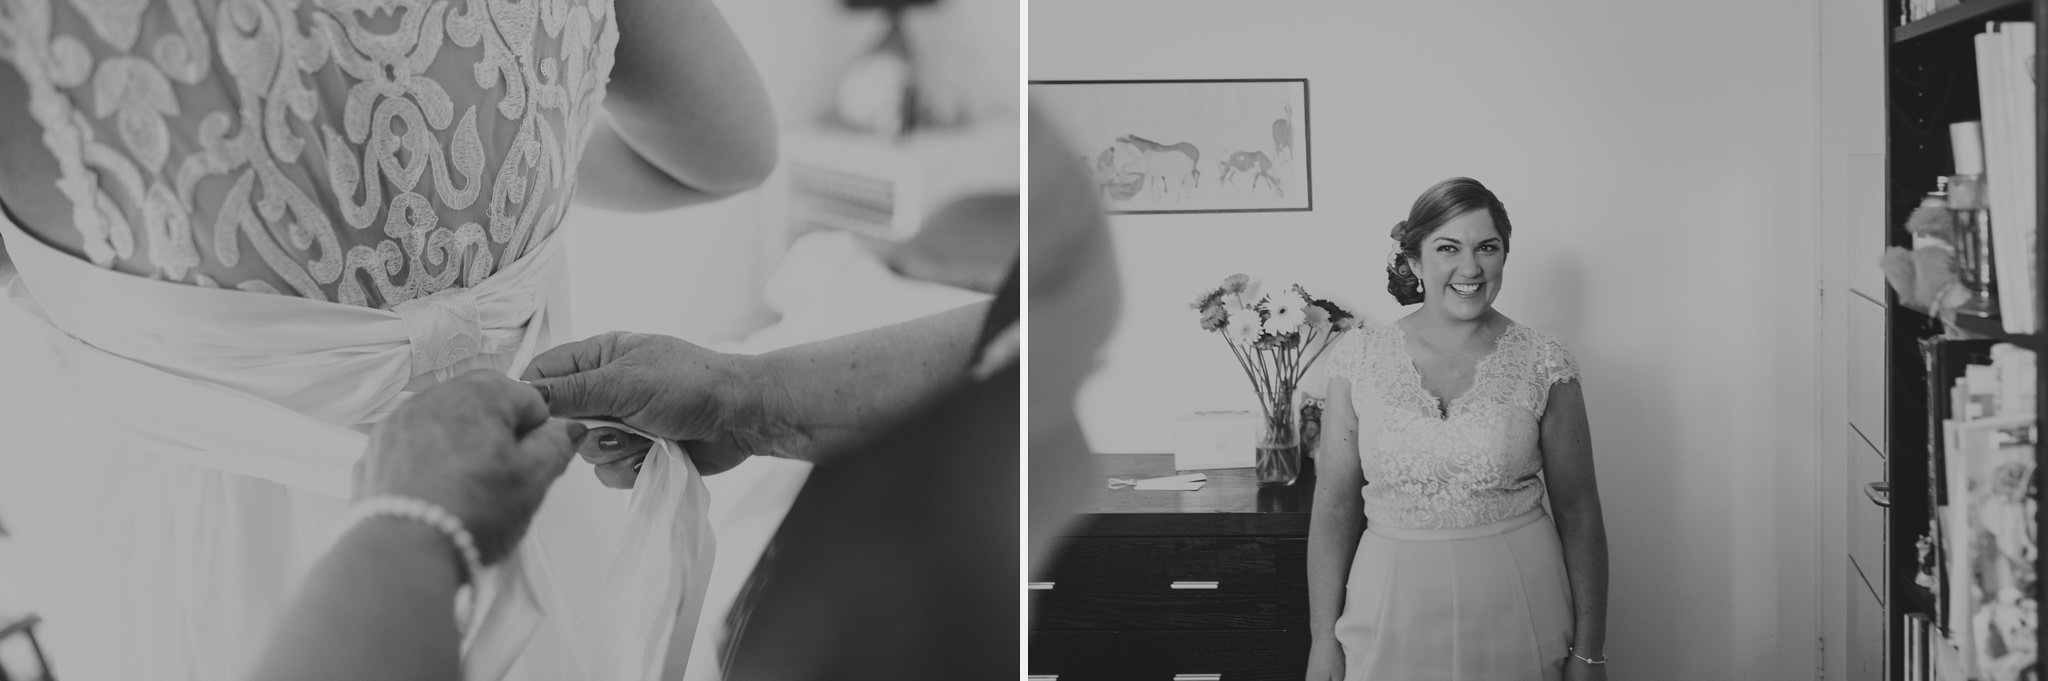 Bride Getting Ready Anna Campbell Lace Dress Melbourne